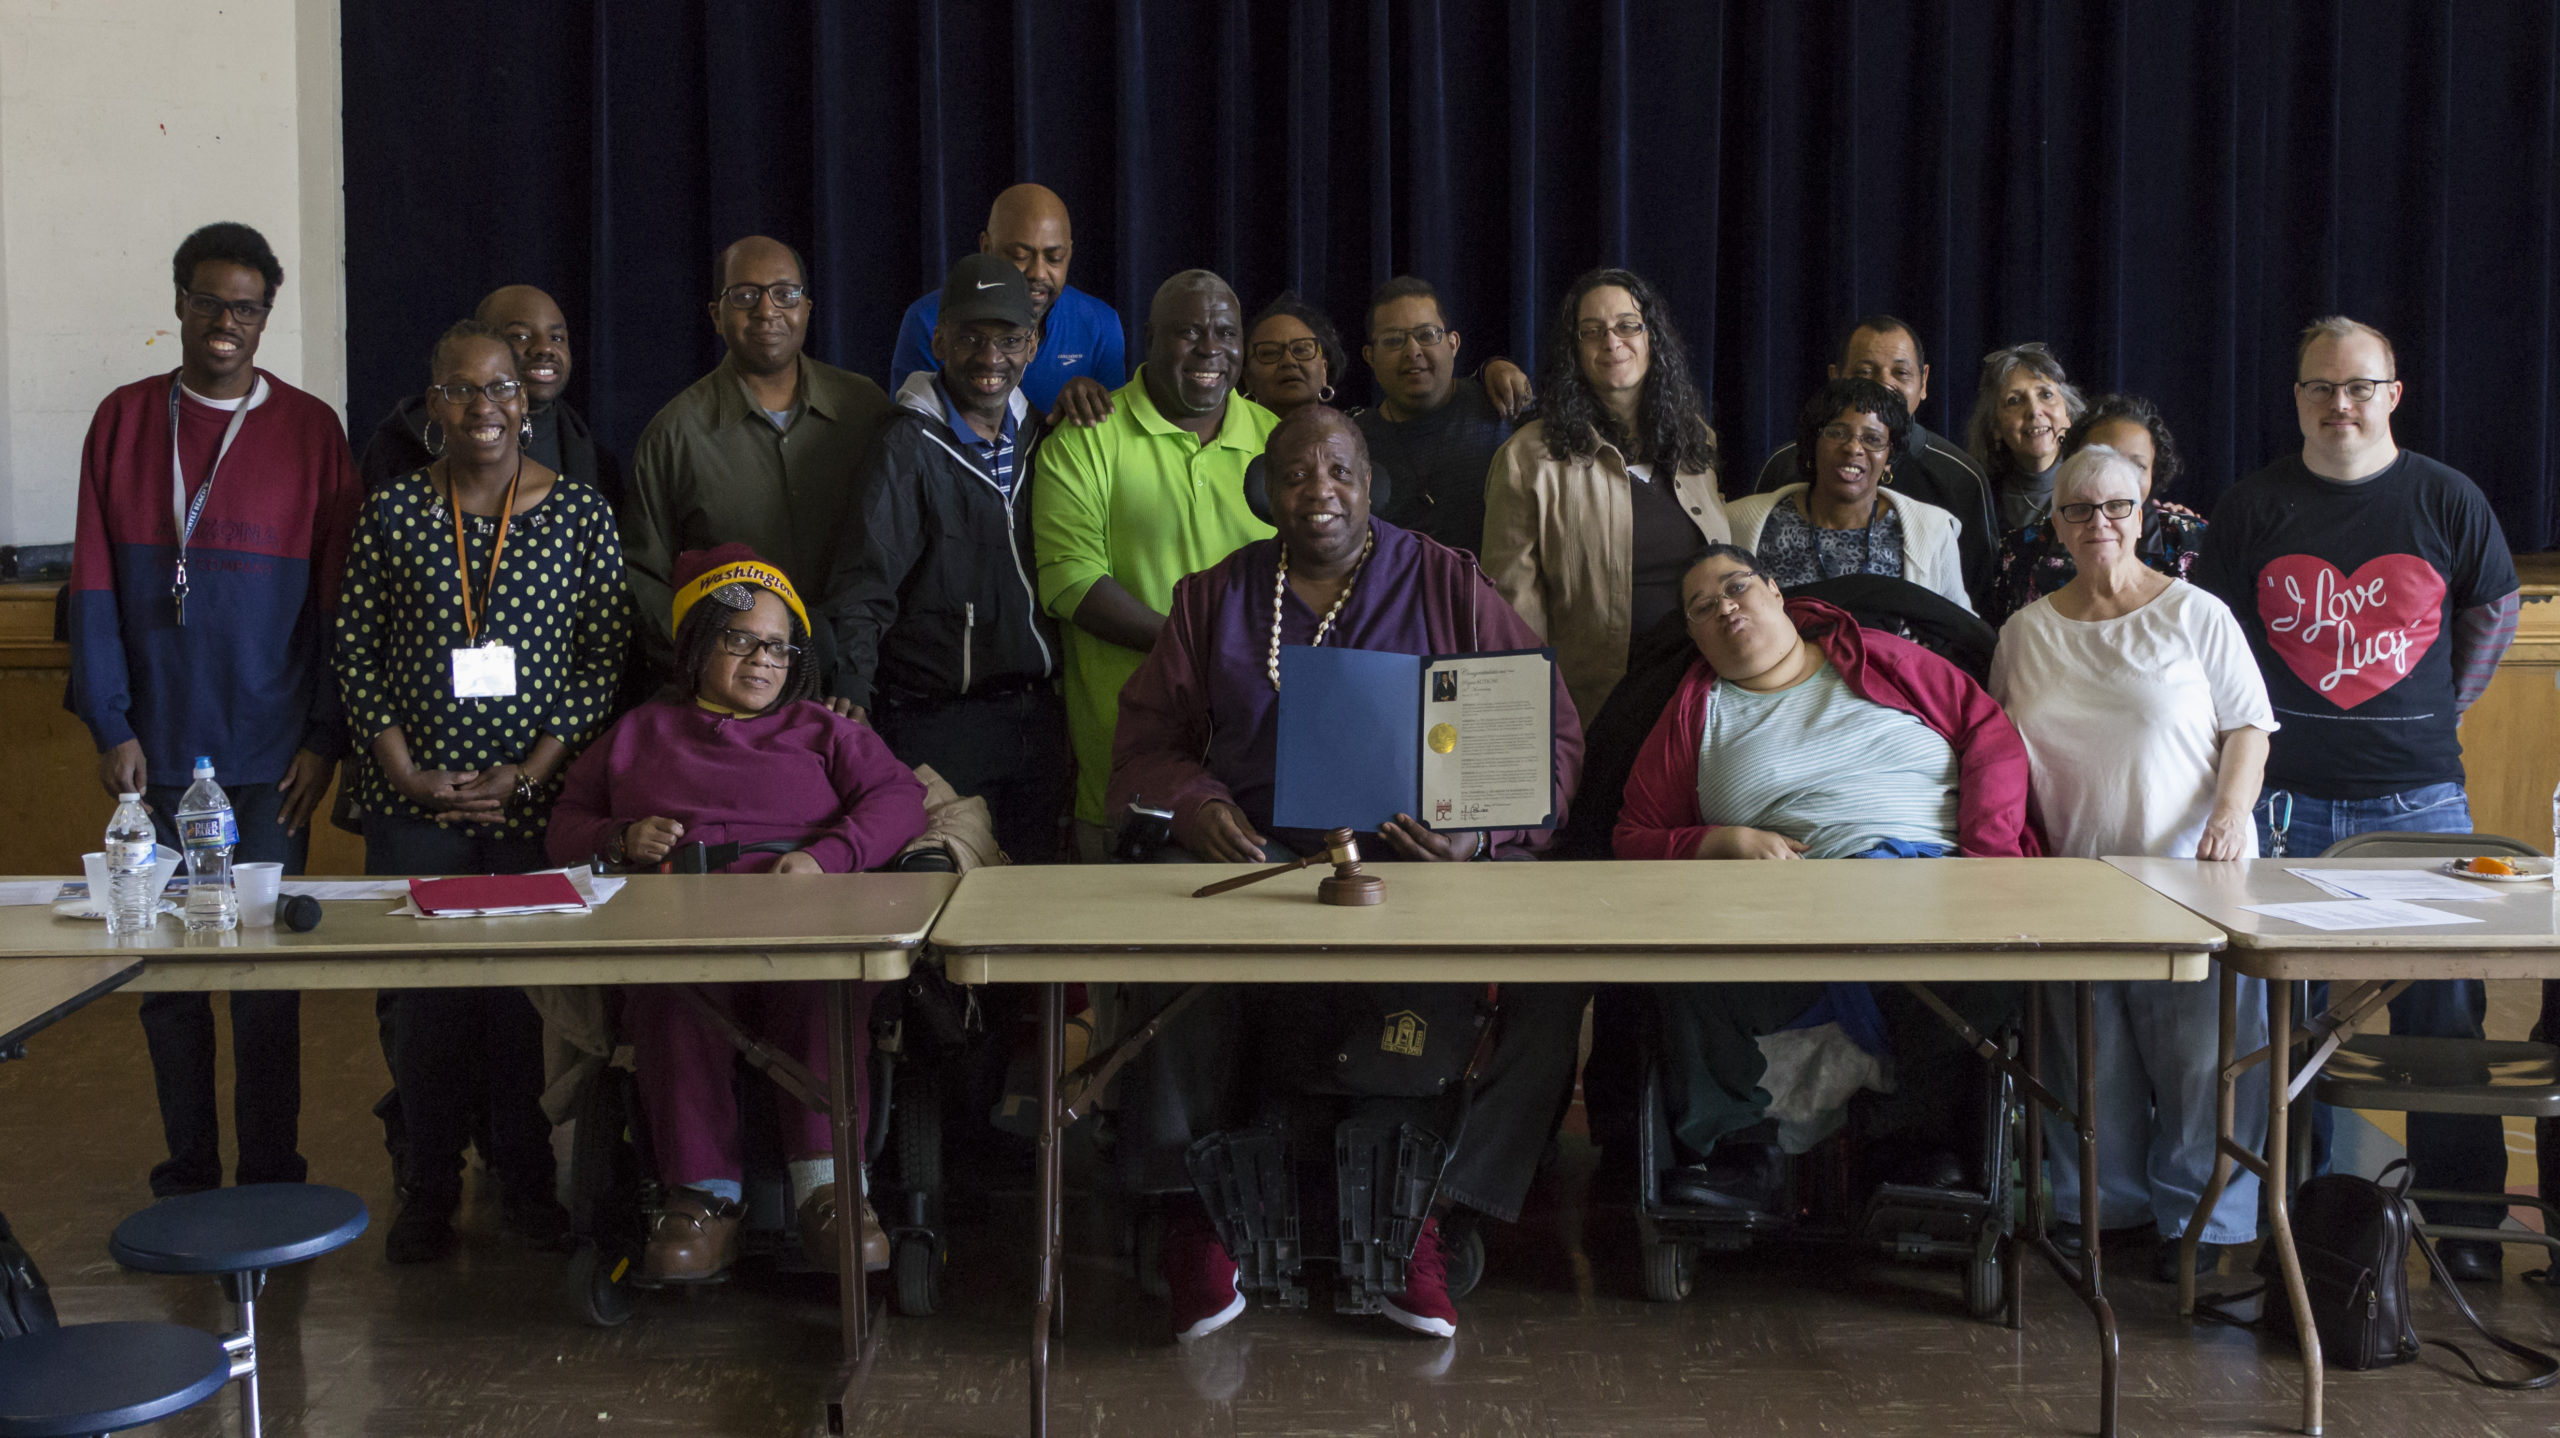 Group picture of Self Advocates smiling with Proclamation